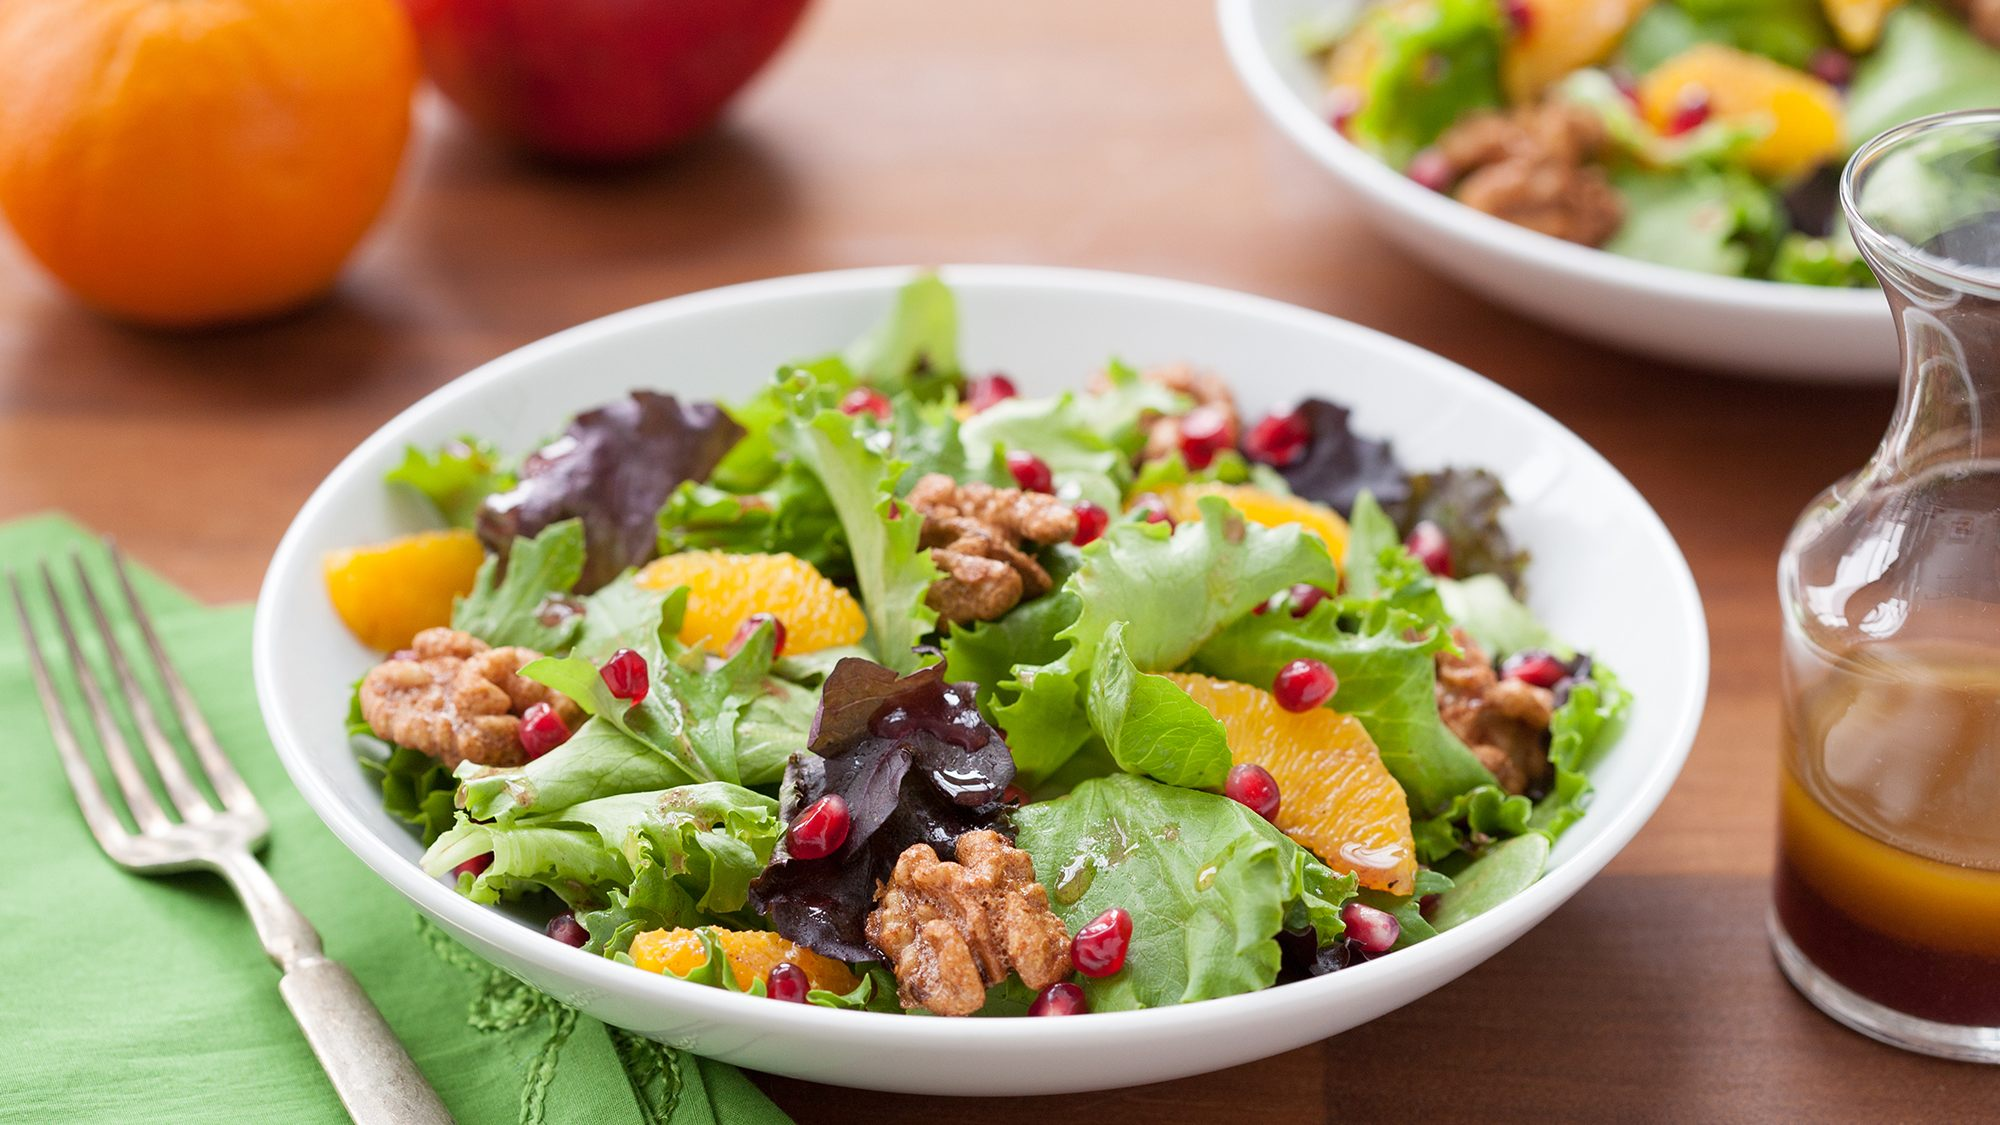 McCormick Spiced Pomegranate and Orange Salad